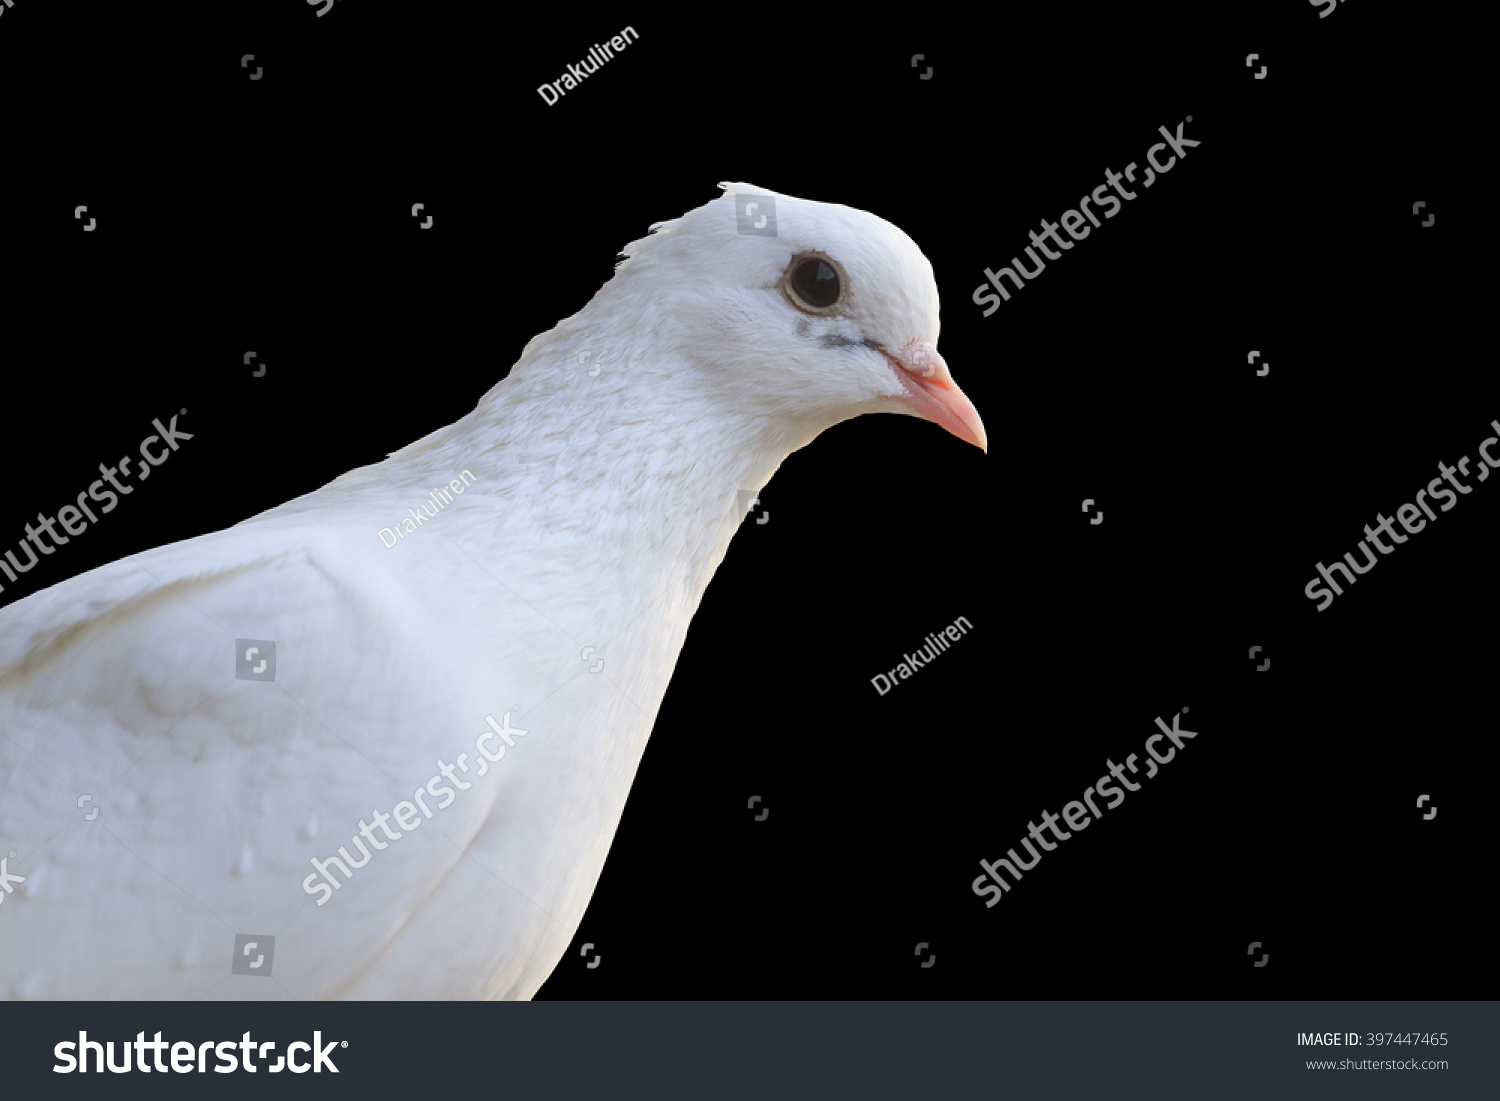 White Homing Pigeon Portrait Isolated On Black And Hotspot A Bird